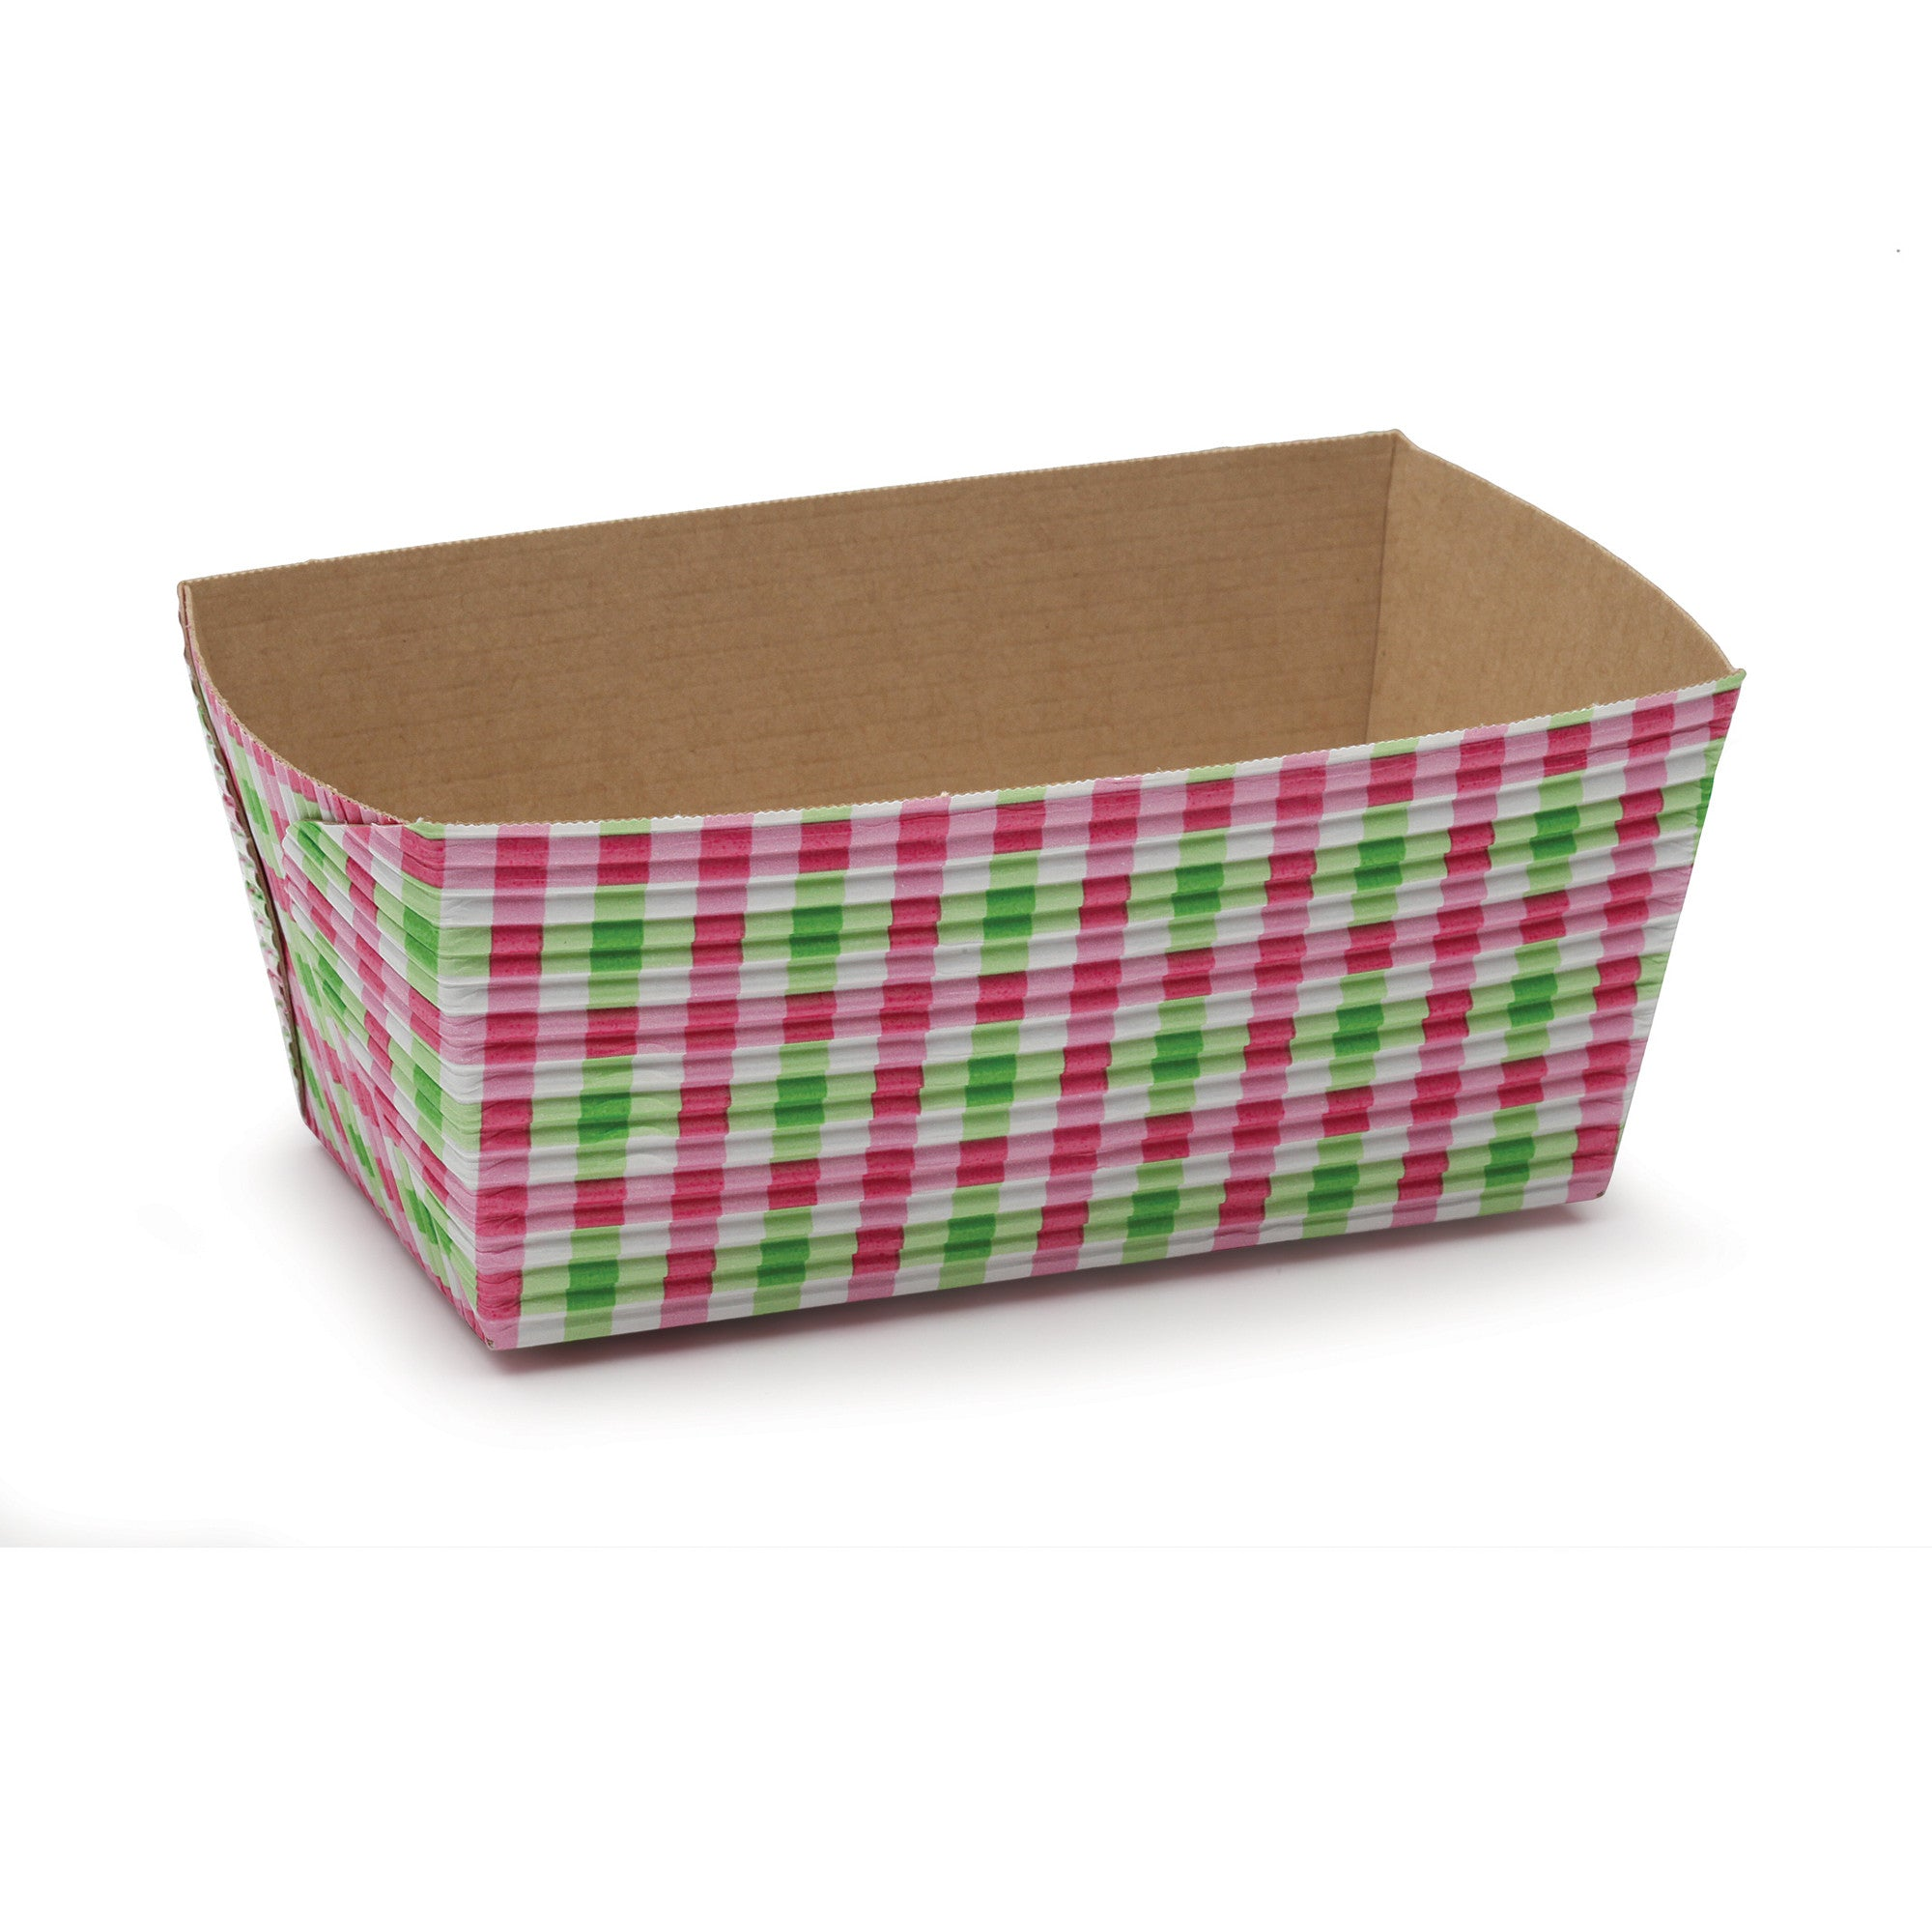 "4.5"" Loaf Pans, 4.5"" Loaf Pan Set, Pink and Green Gingham (Set of 50) - Welcome Home Brands"